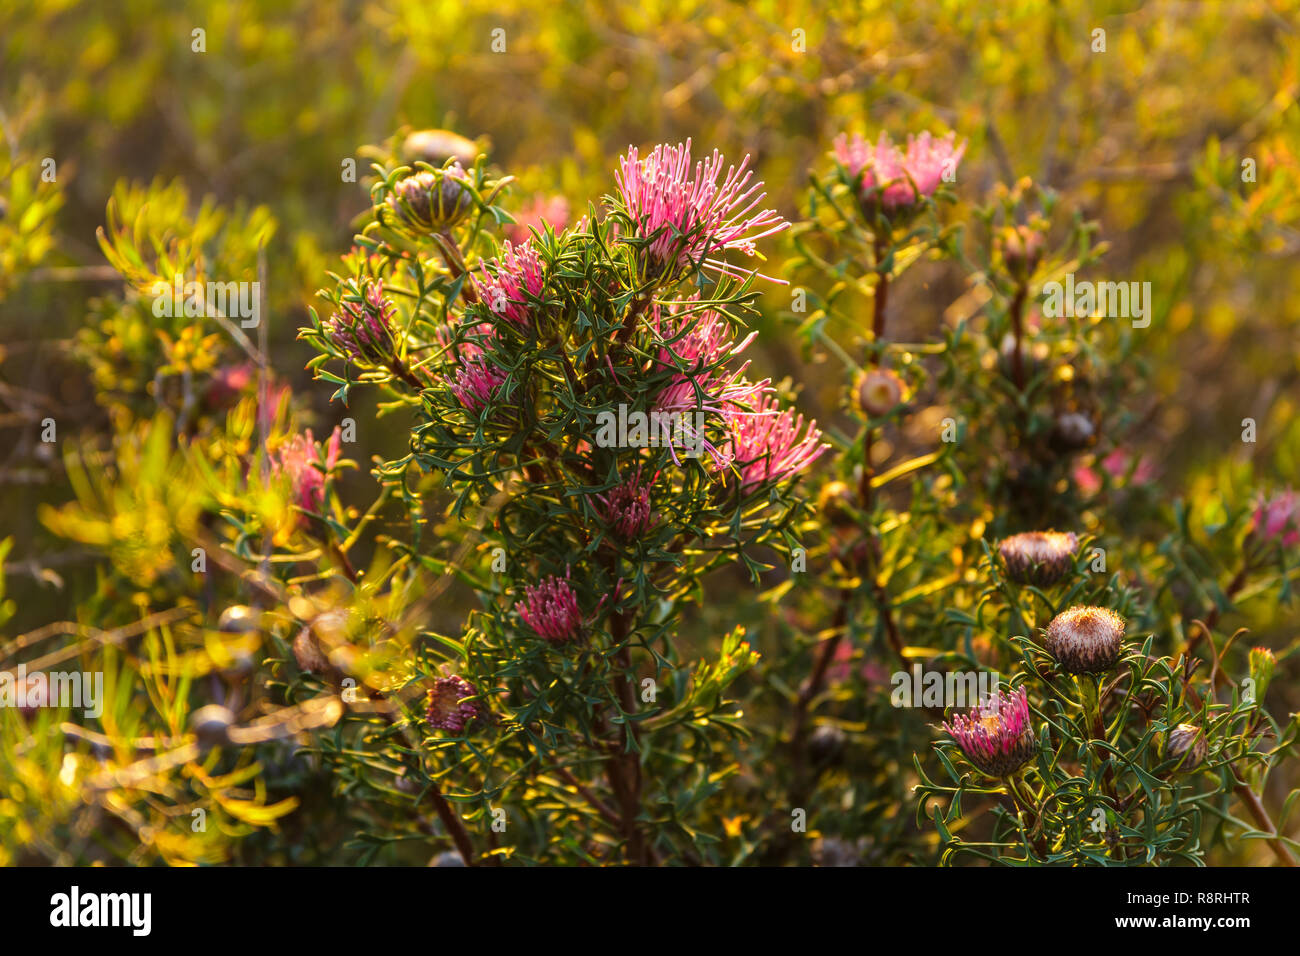 Western Australian native flower - Stock Image